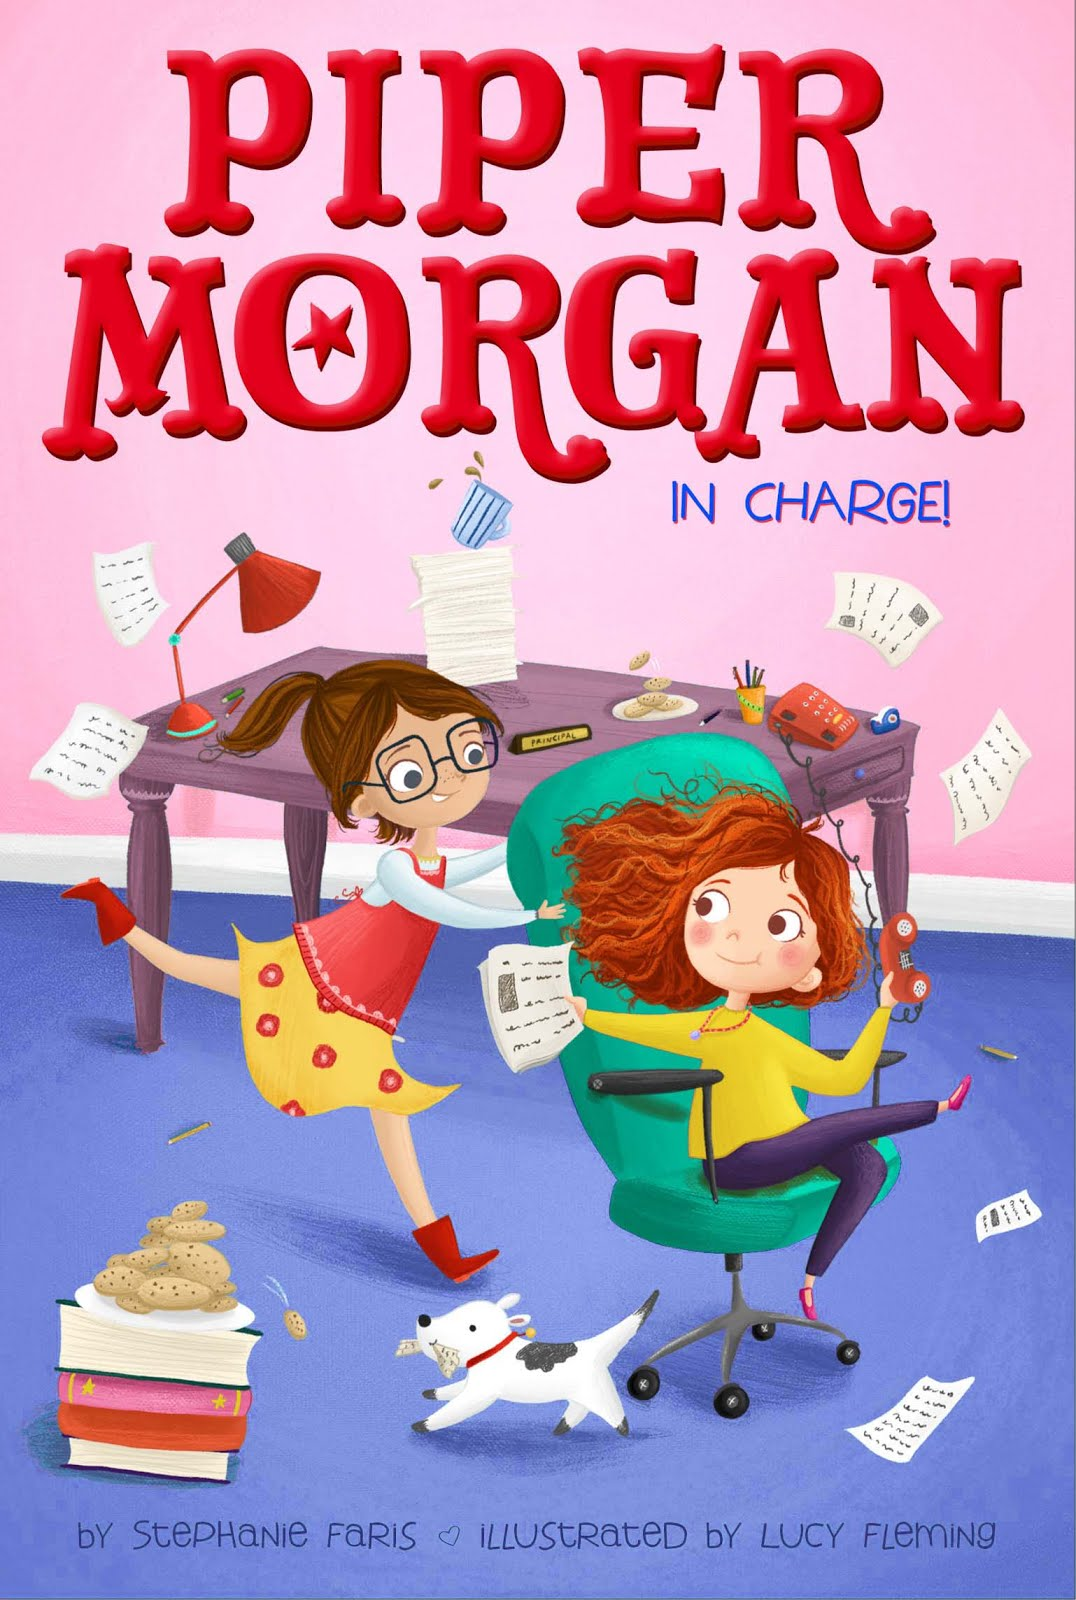 Piper Morgan in Charge! (Book 2 of 5)